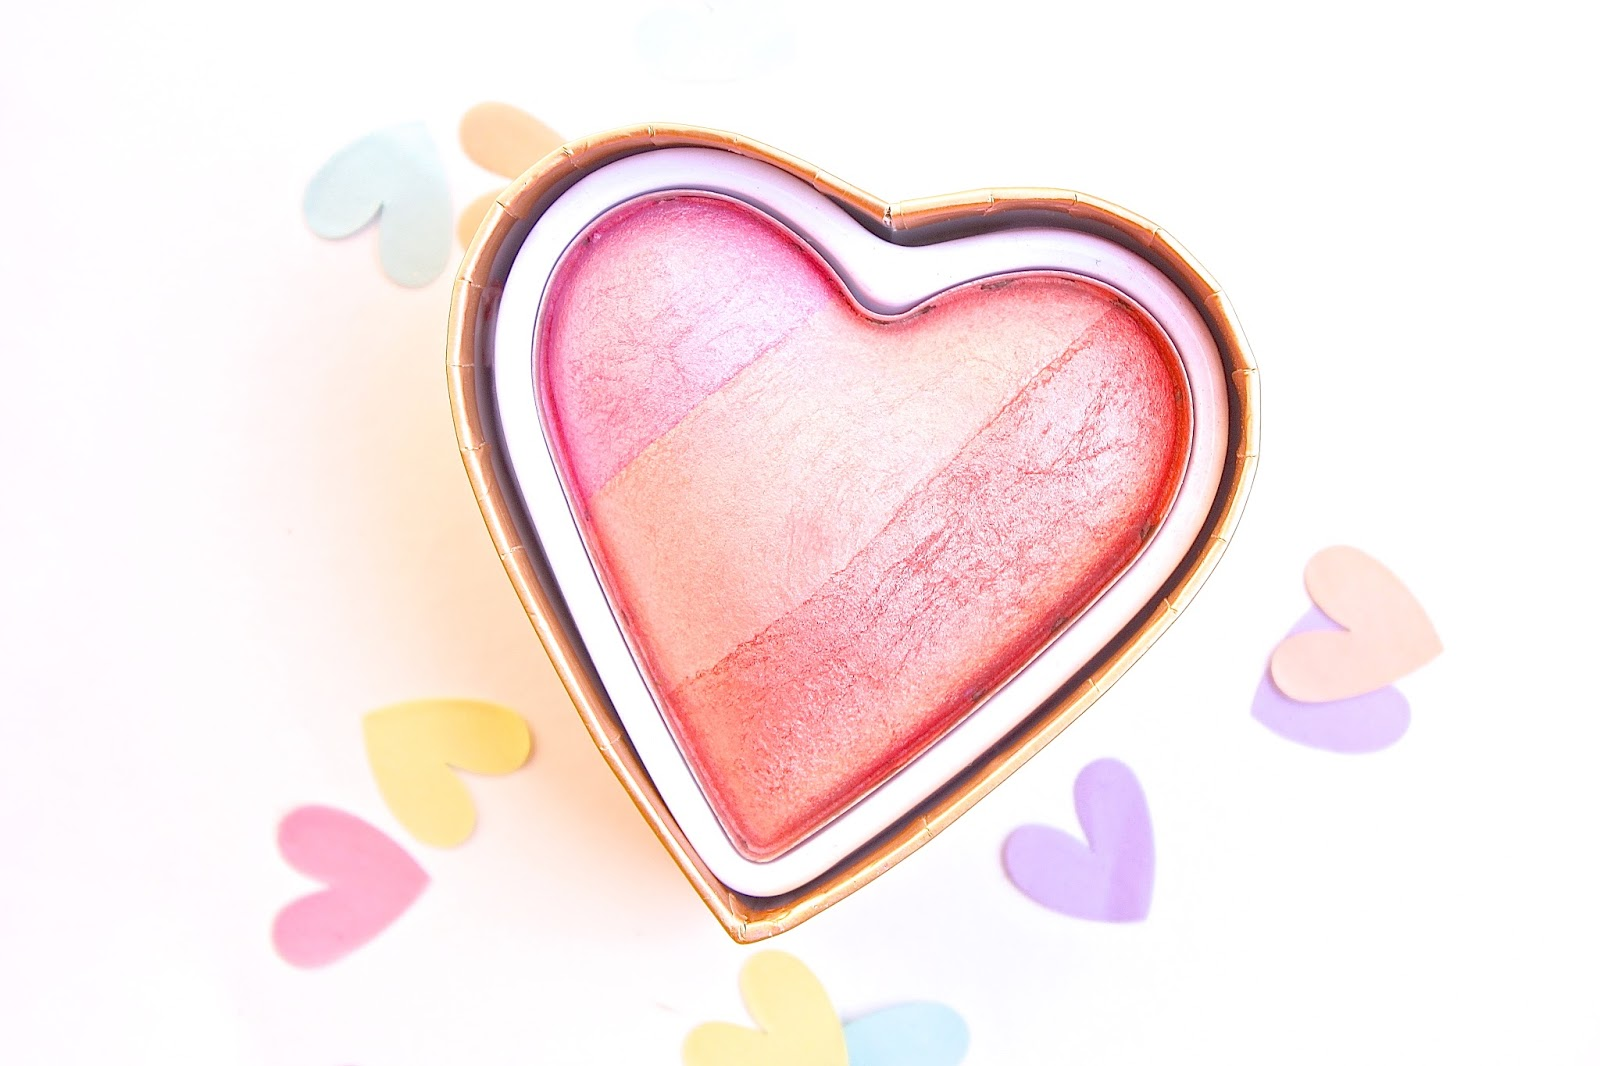 Make Up Revolution Blushing Hearts 'Candy Queen of Hearts'